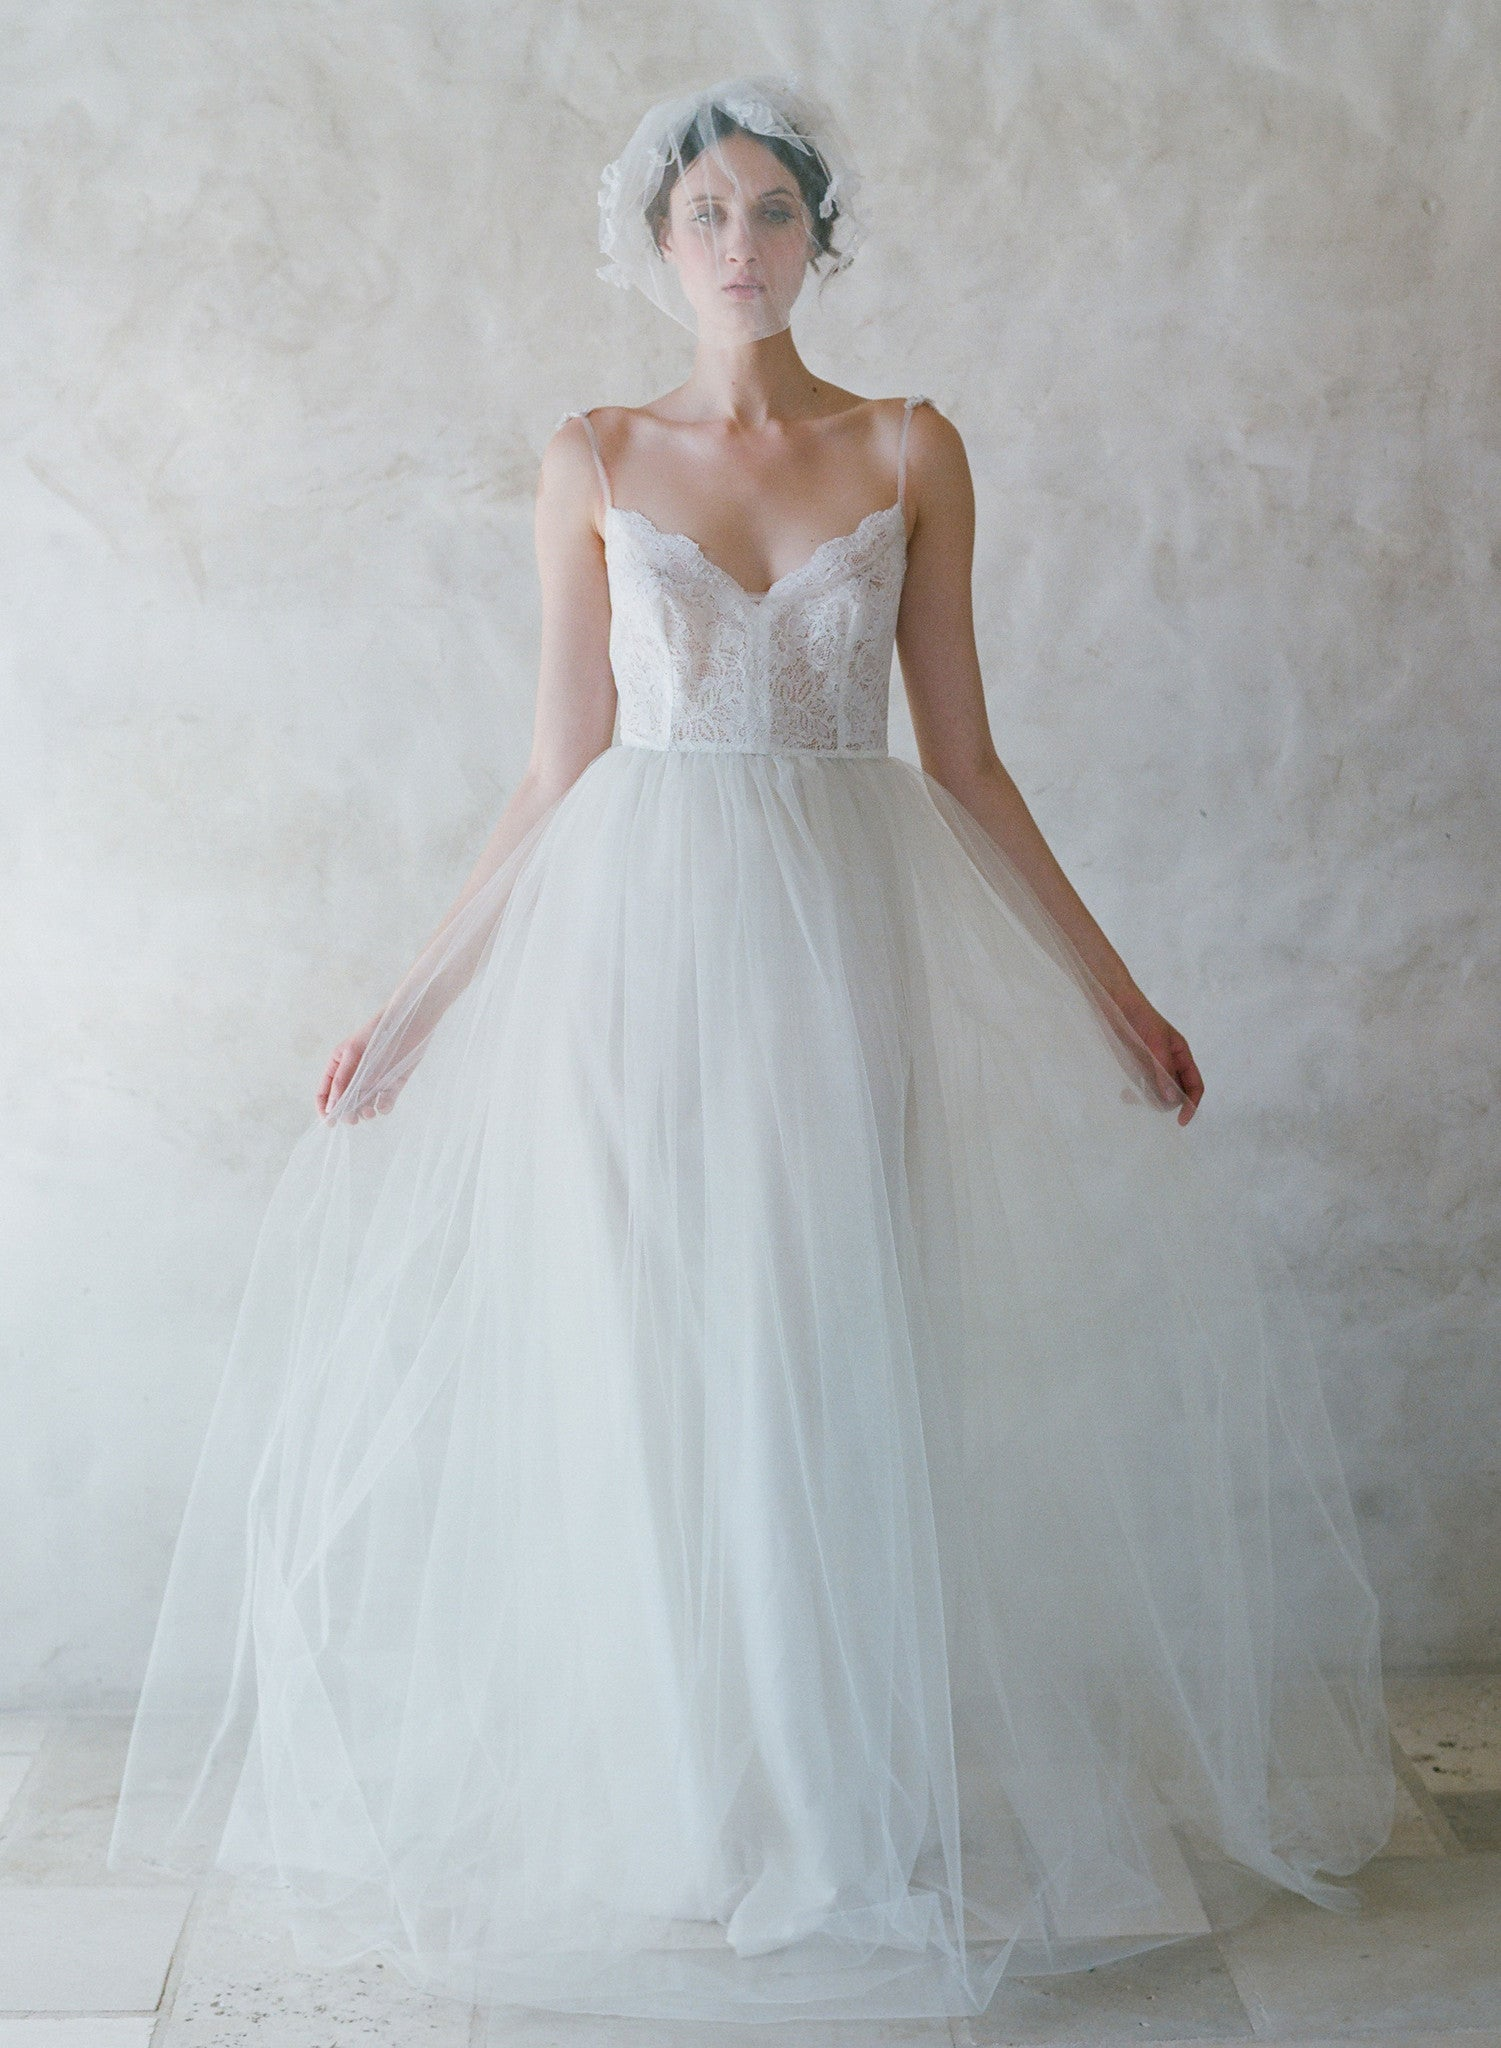 Jubilee - Lace and tulle ballgown - Style #TH004